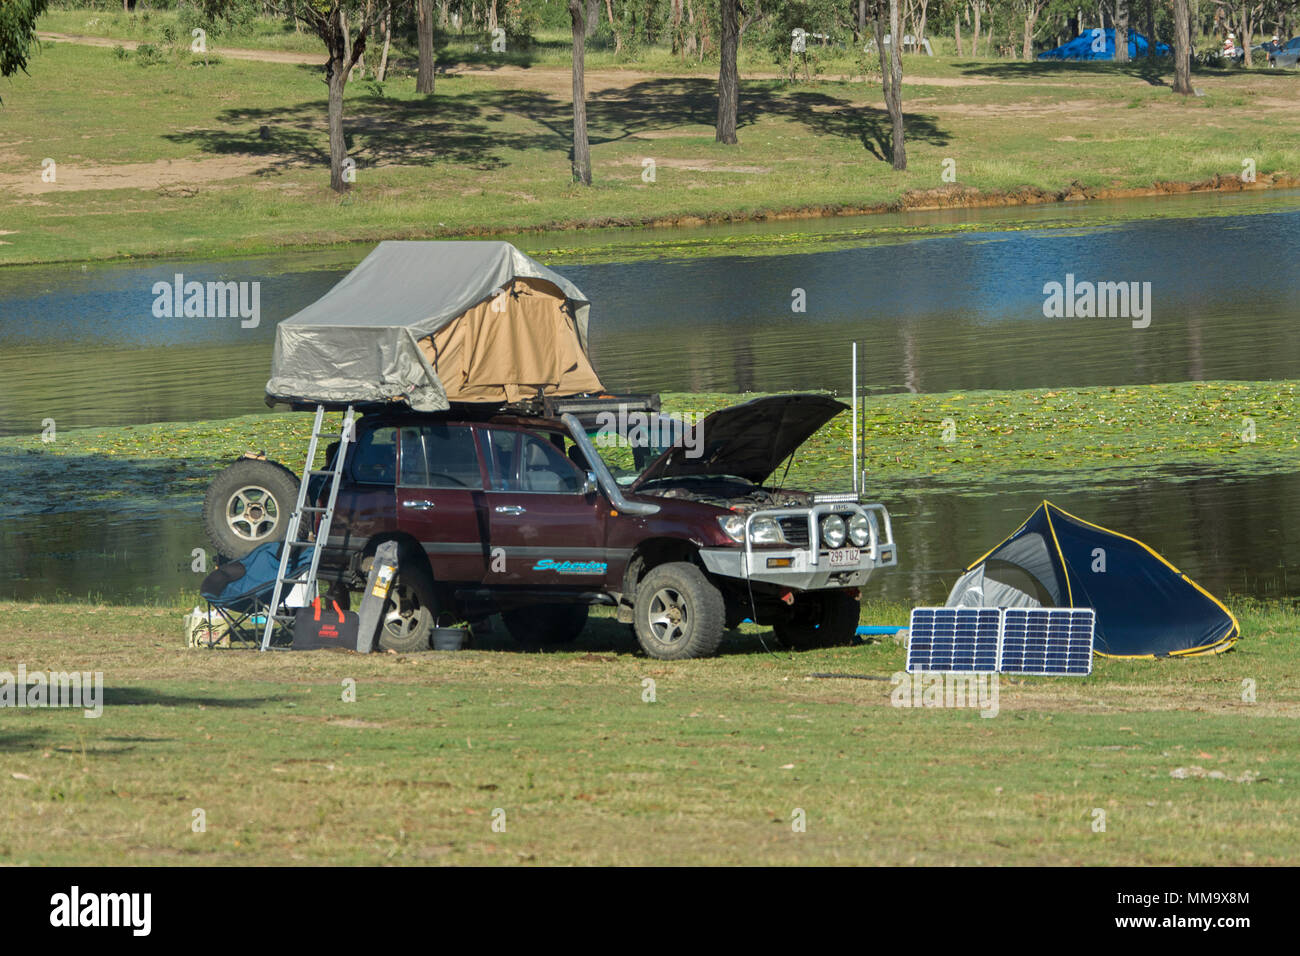 Four-wheel drive vehicle with rooftop tent c&ing gear and solar panel on & Car Rooftop Tent Stock Photos u0026 Car Rooftop Tent Stock Images - Alamy